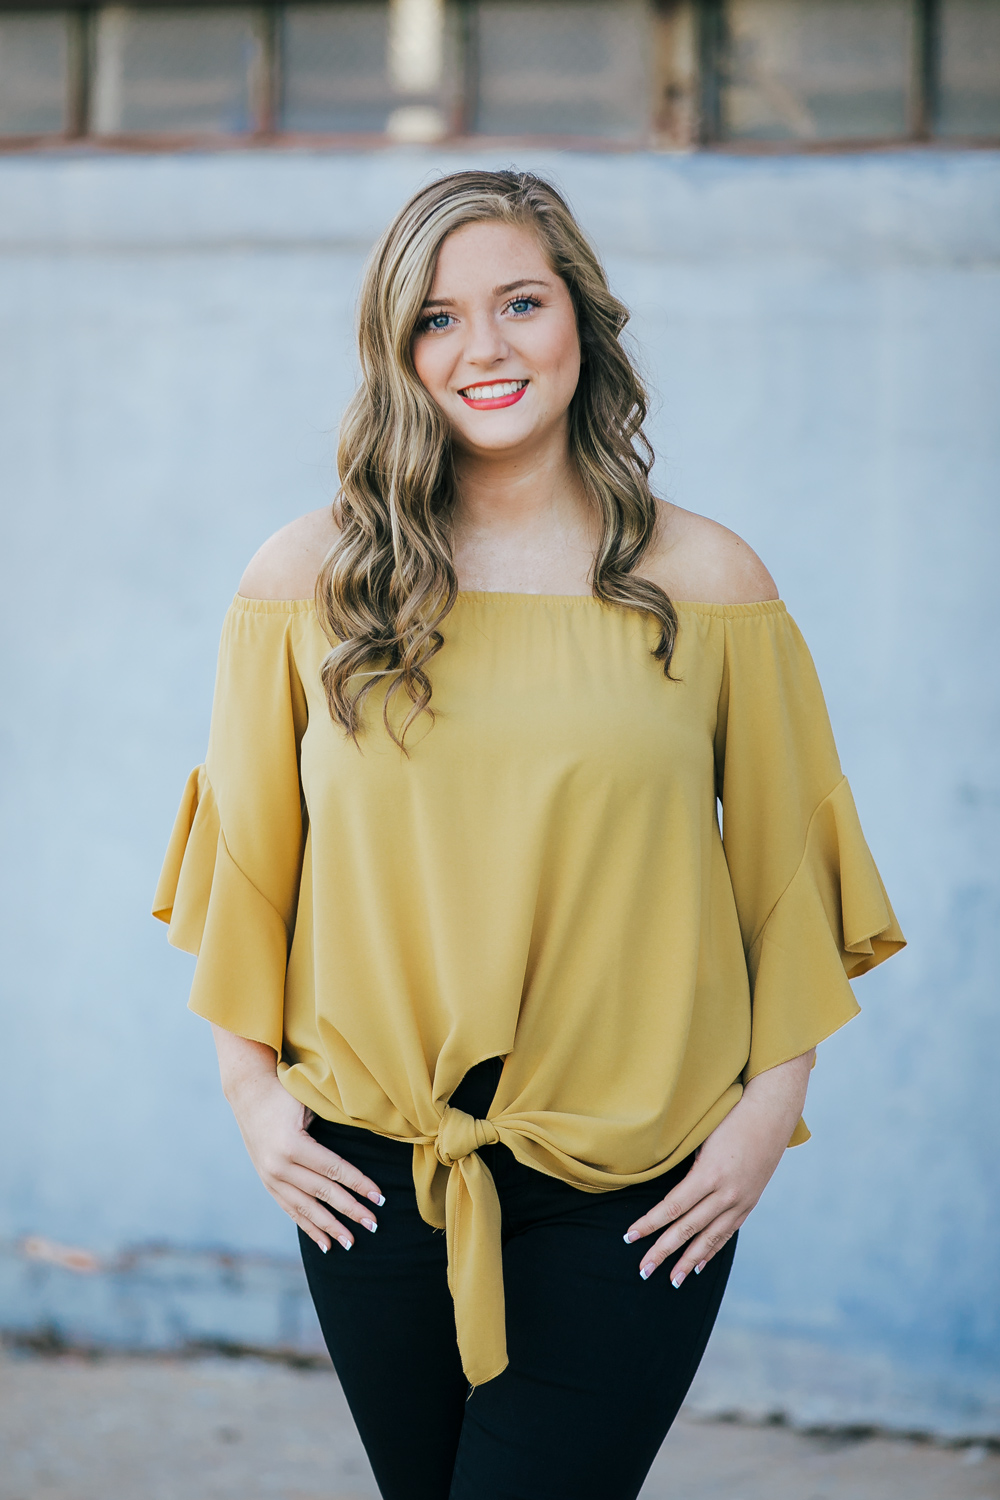 High school senior girl with long blonde hair wearing yellow top and black pants standing in front of a blue wall in automobile alley in OKC.